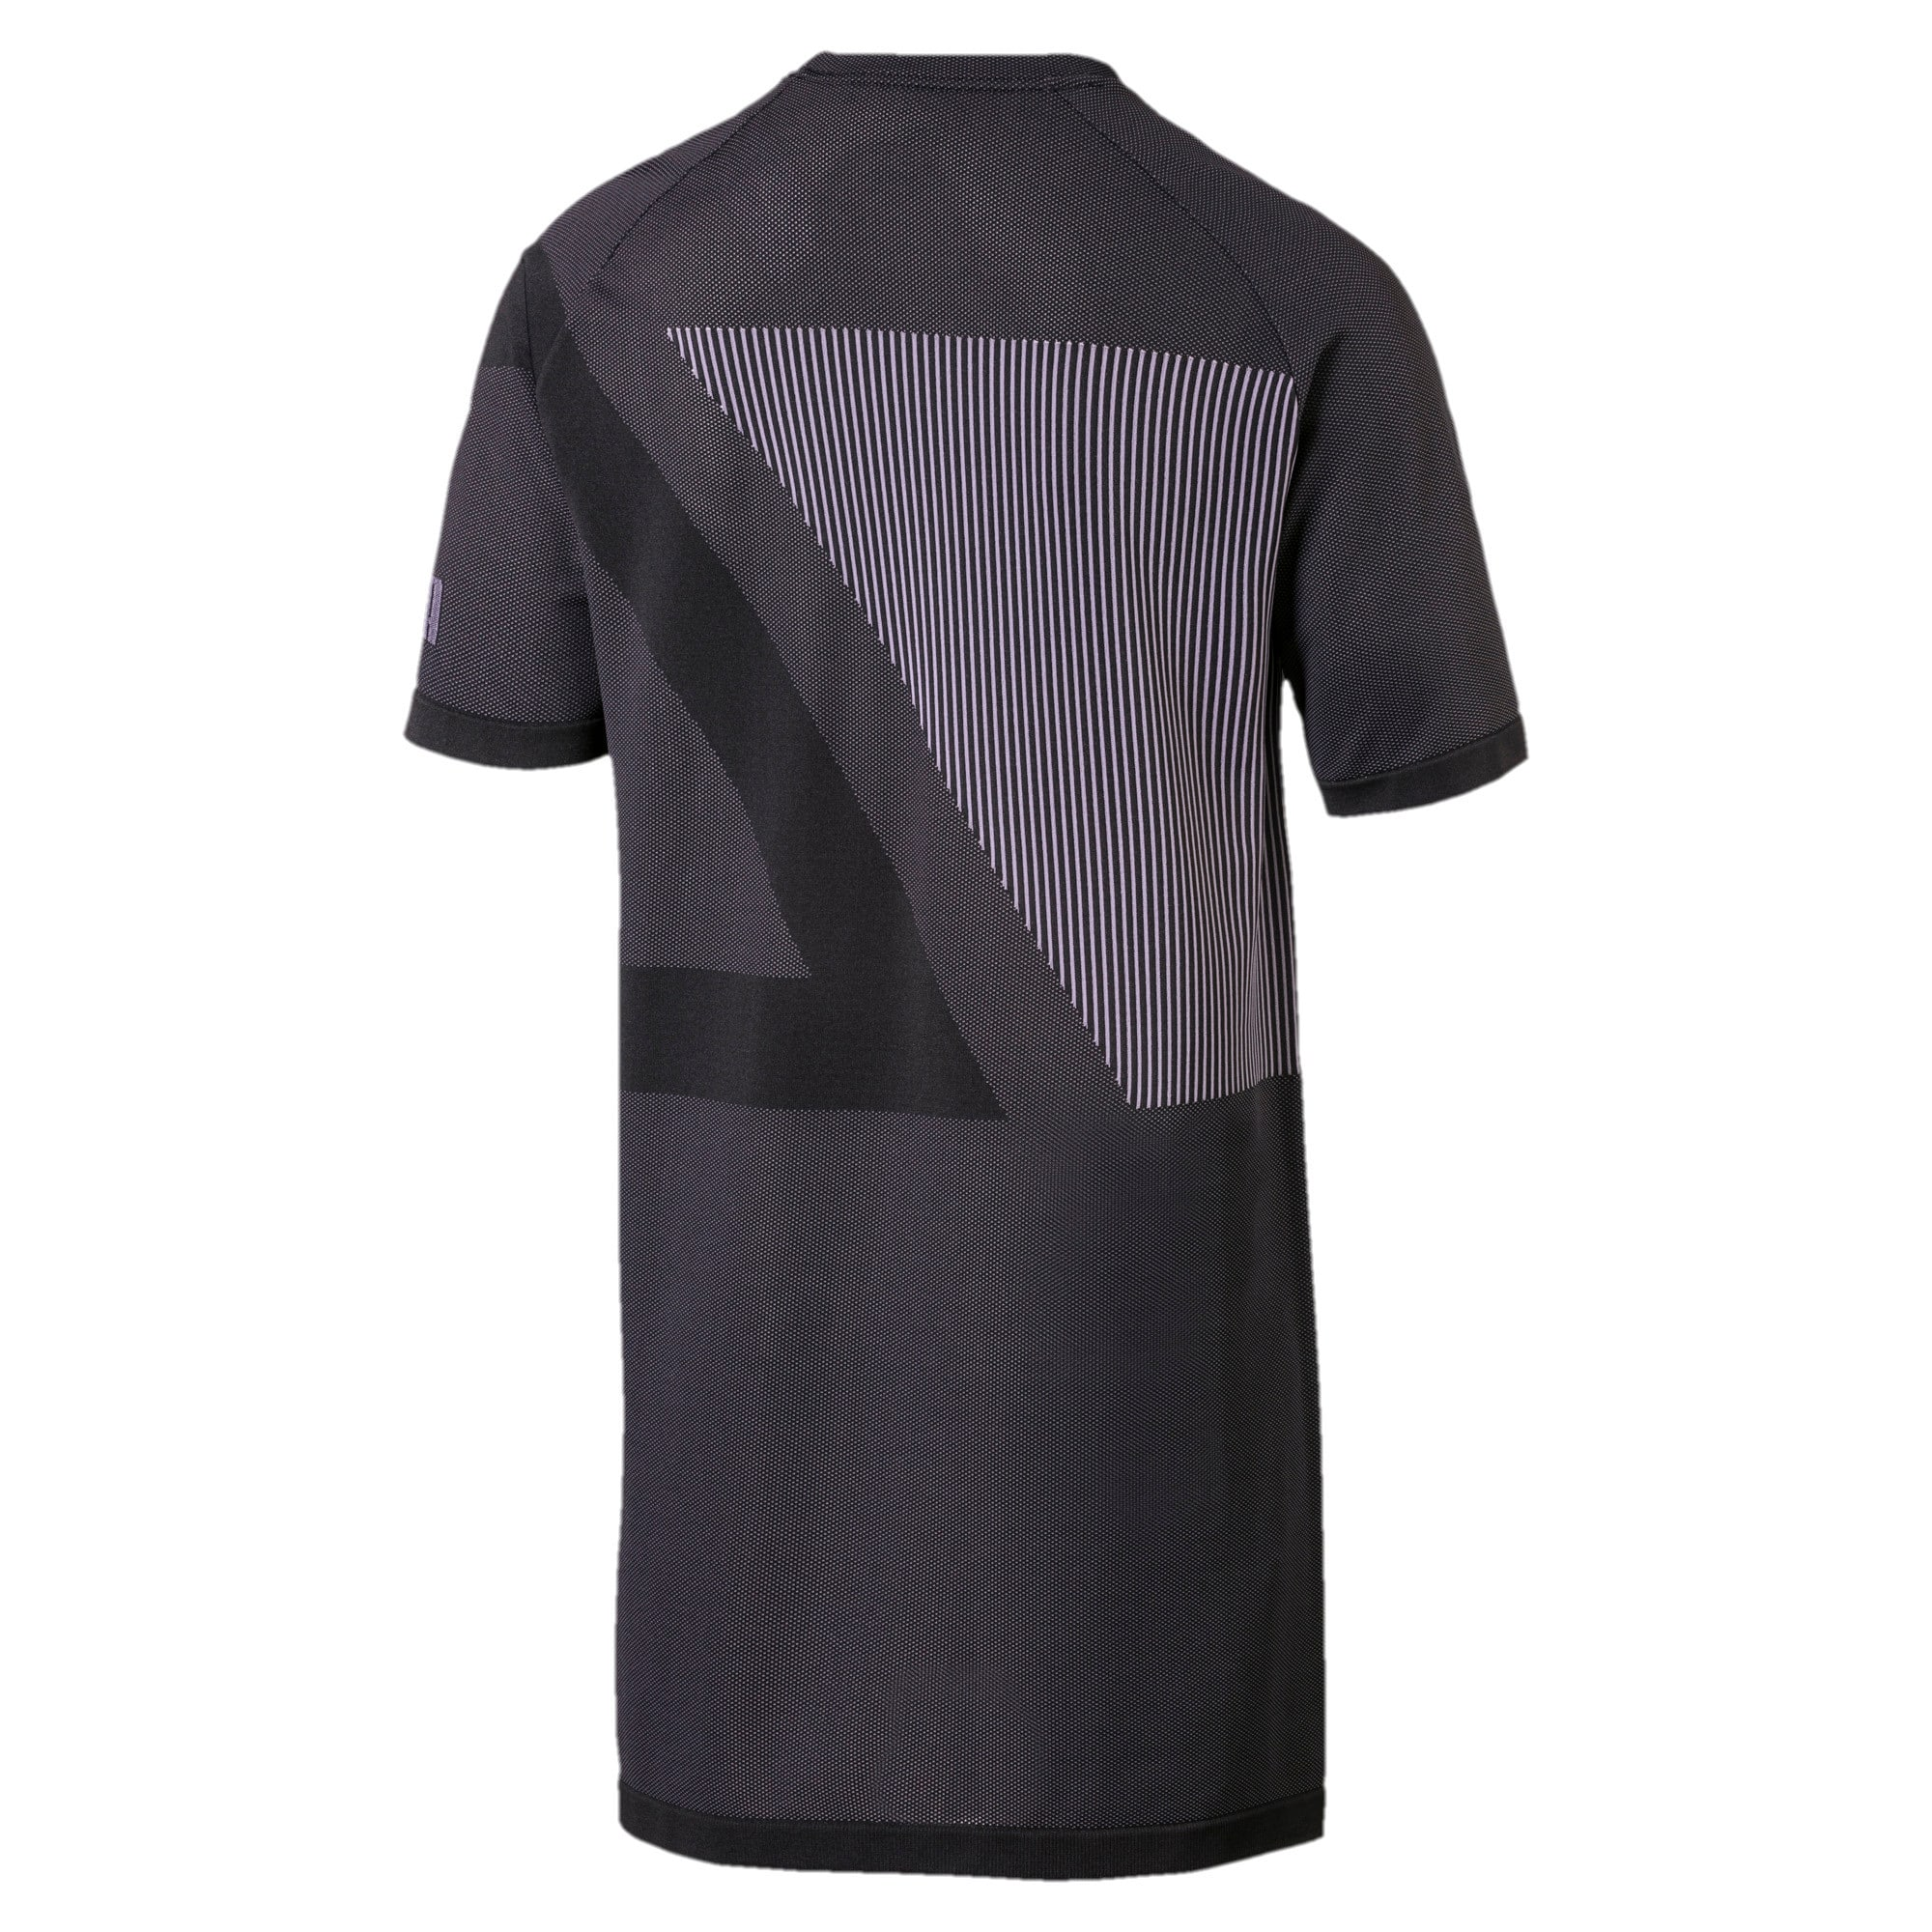 Thumbnail 5 of Evolution Men's evoKNIT T-Shirt, Puma Black, medium-IND